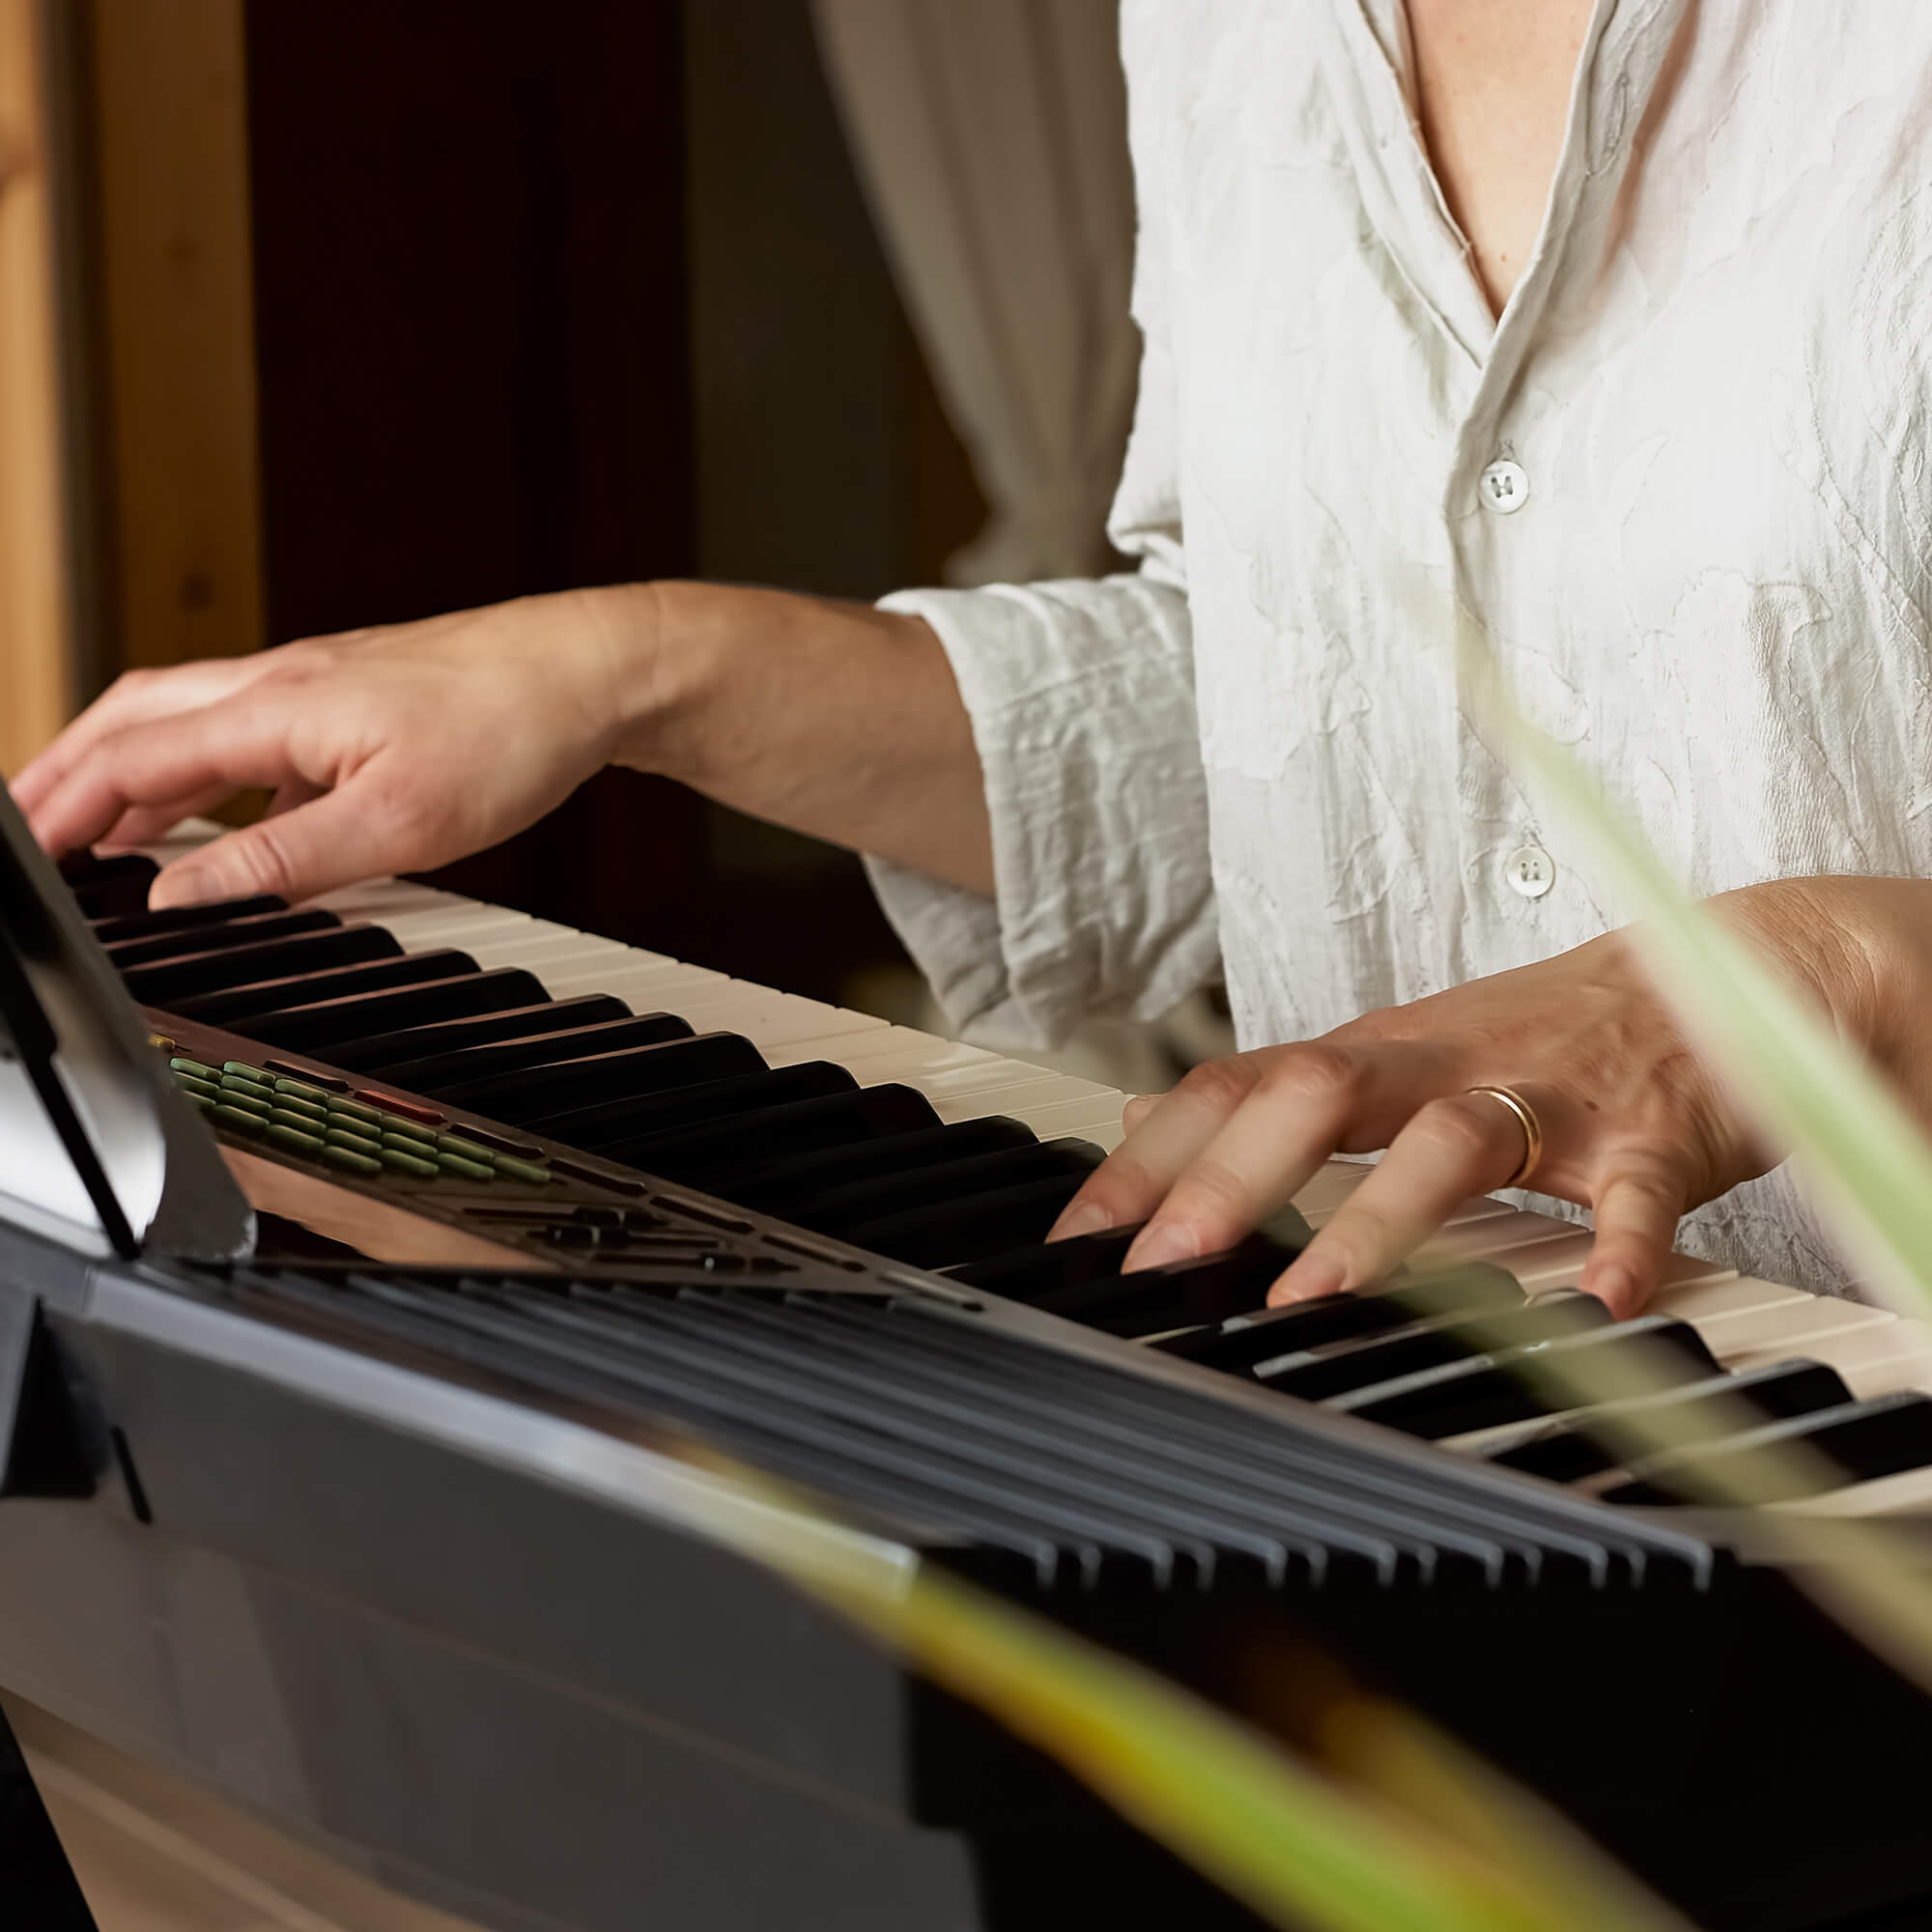 A person wearing a loose fitting white linen look shirt lays their hands on a keyboard next to a plant